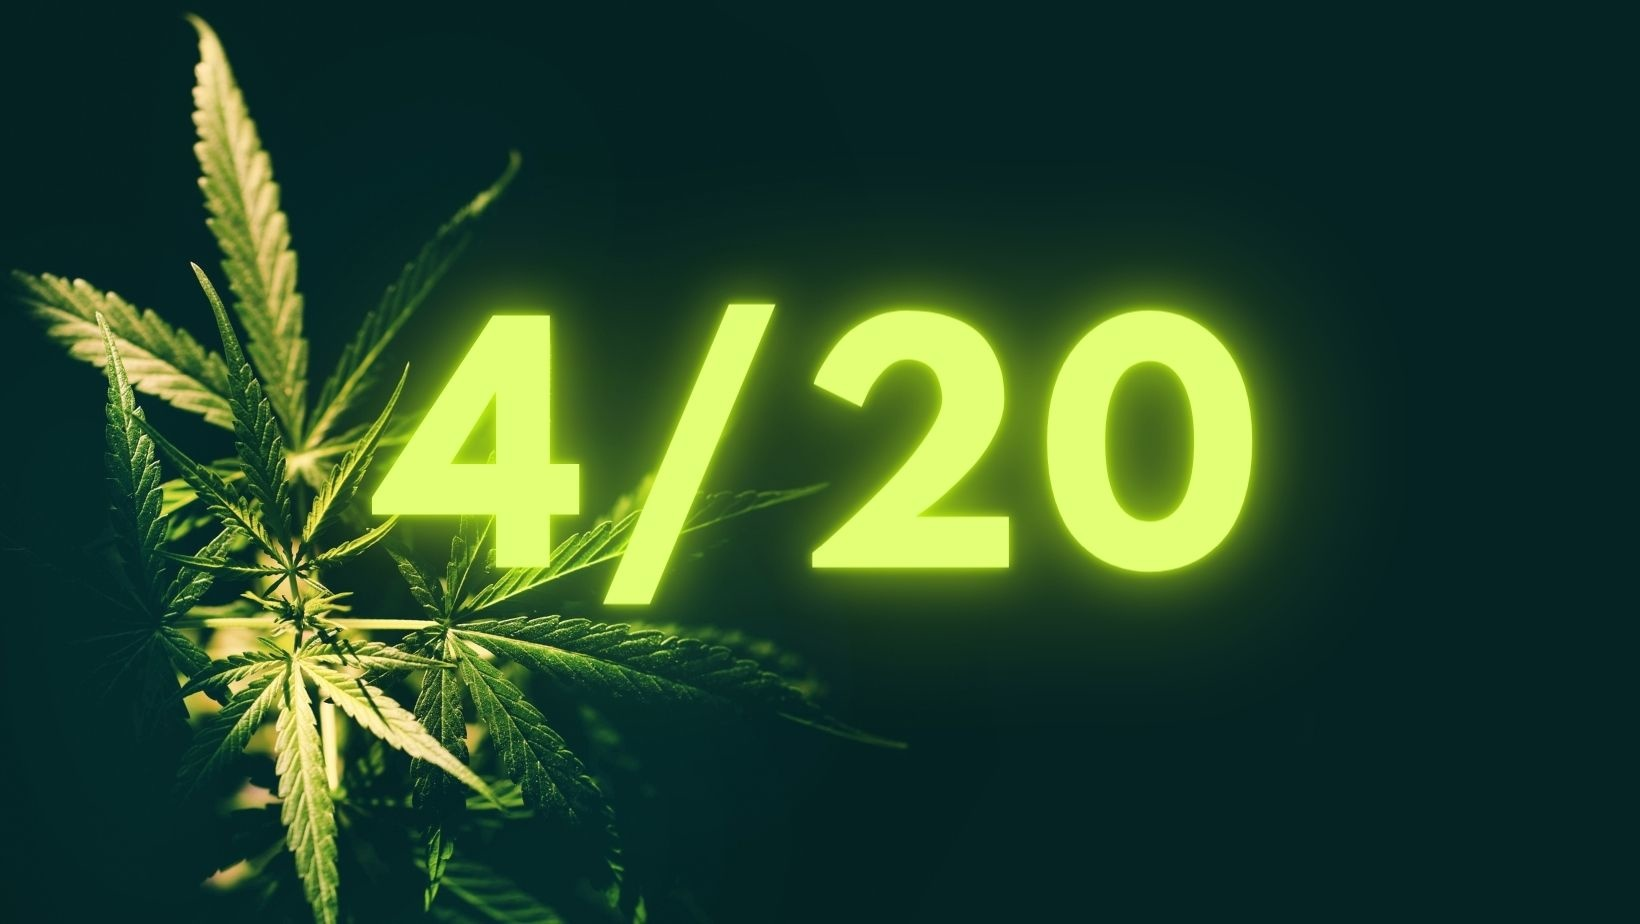 Happy 4/20 ! April 20th